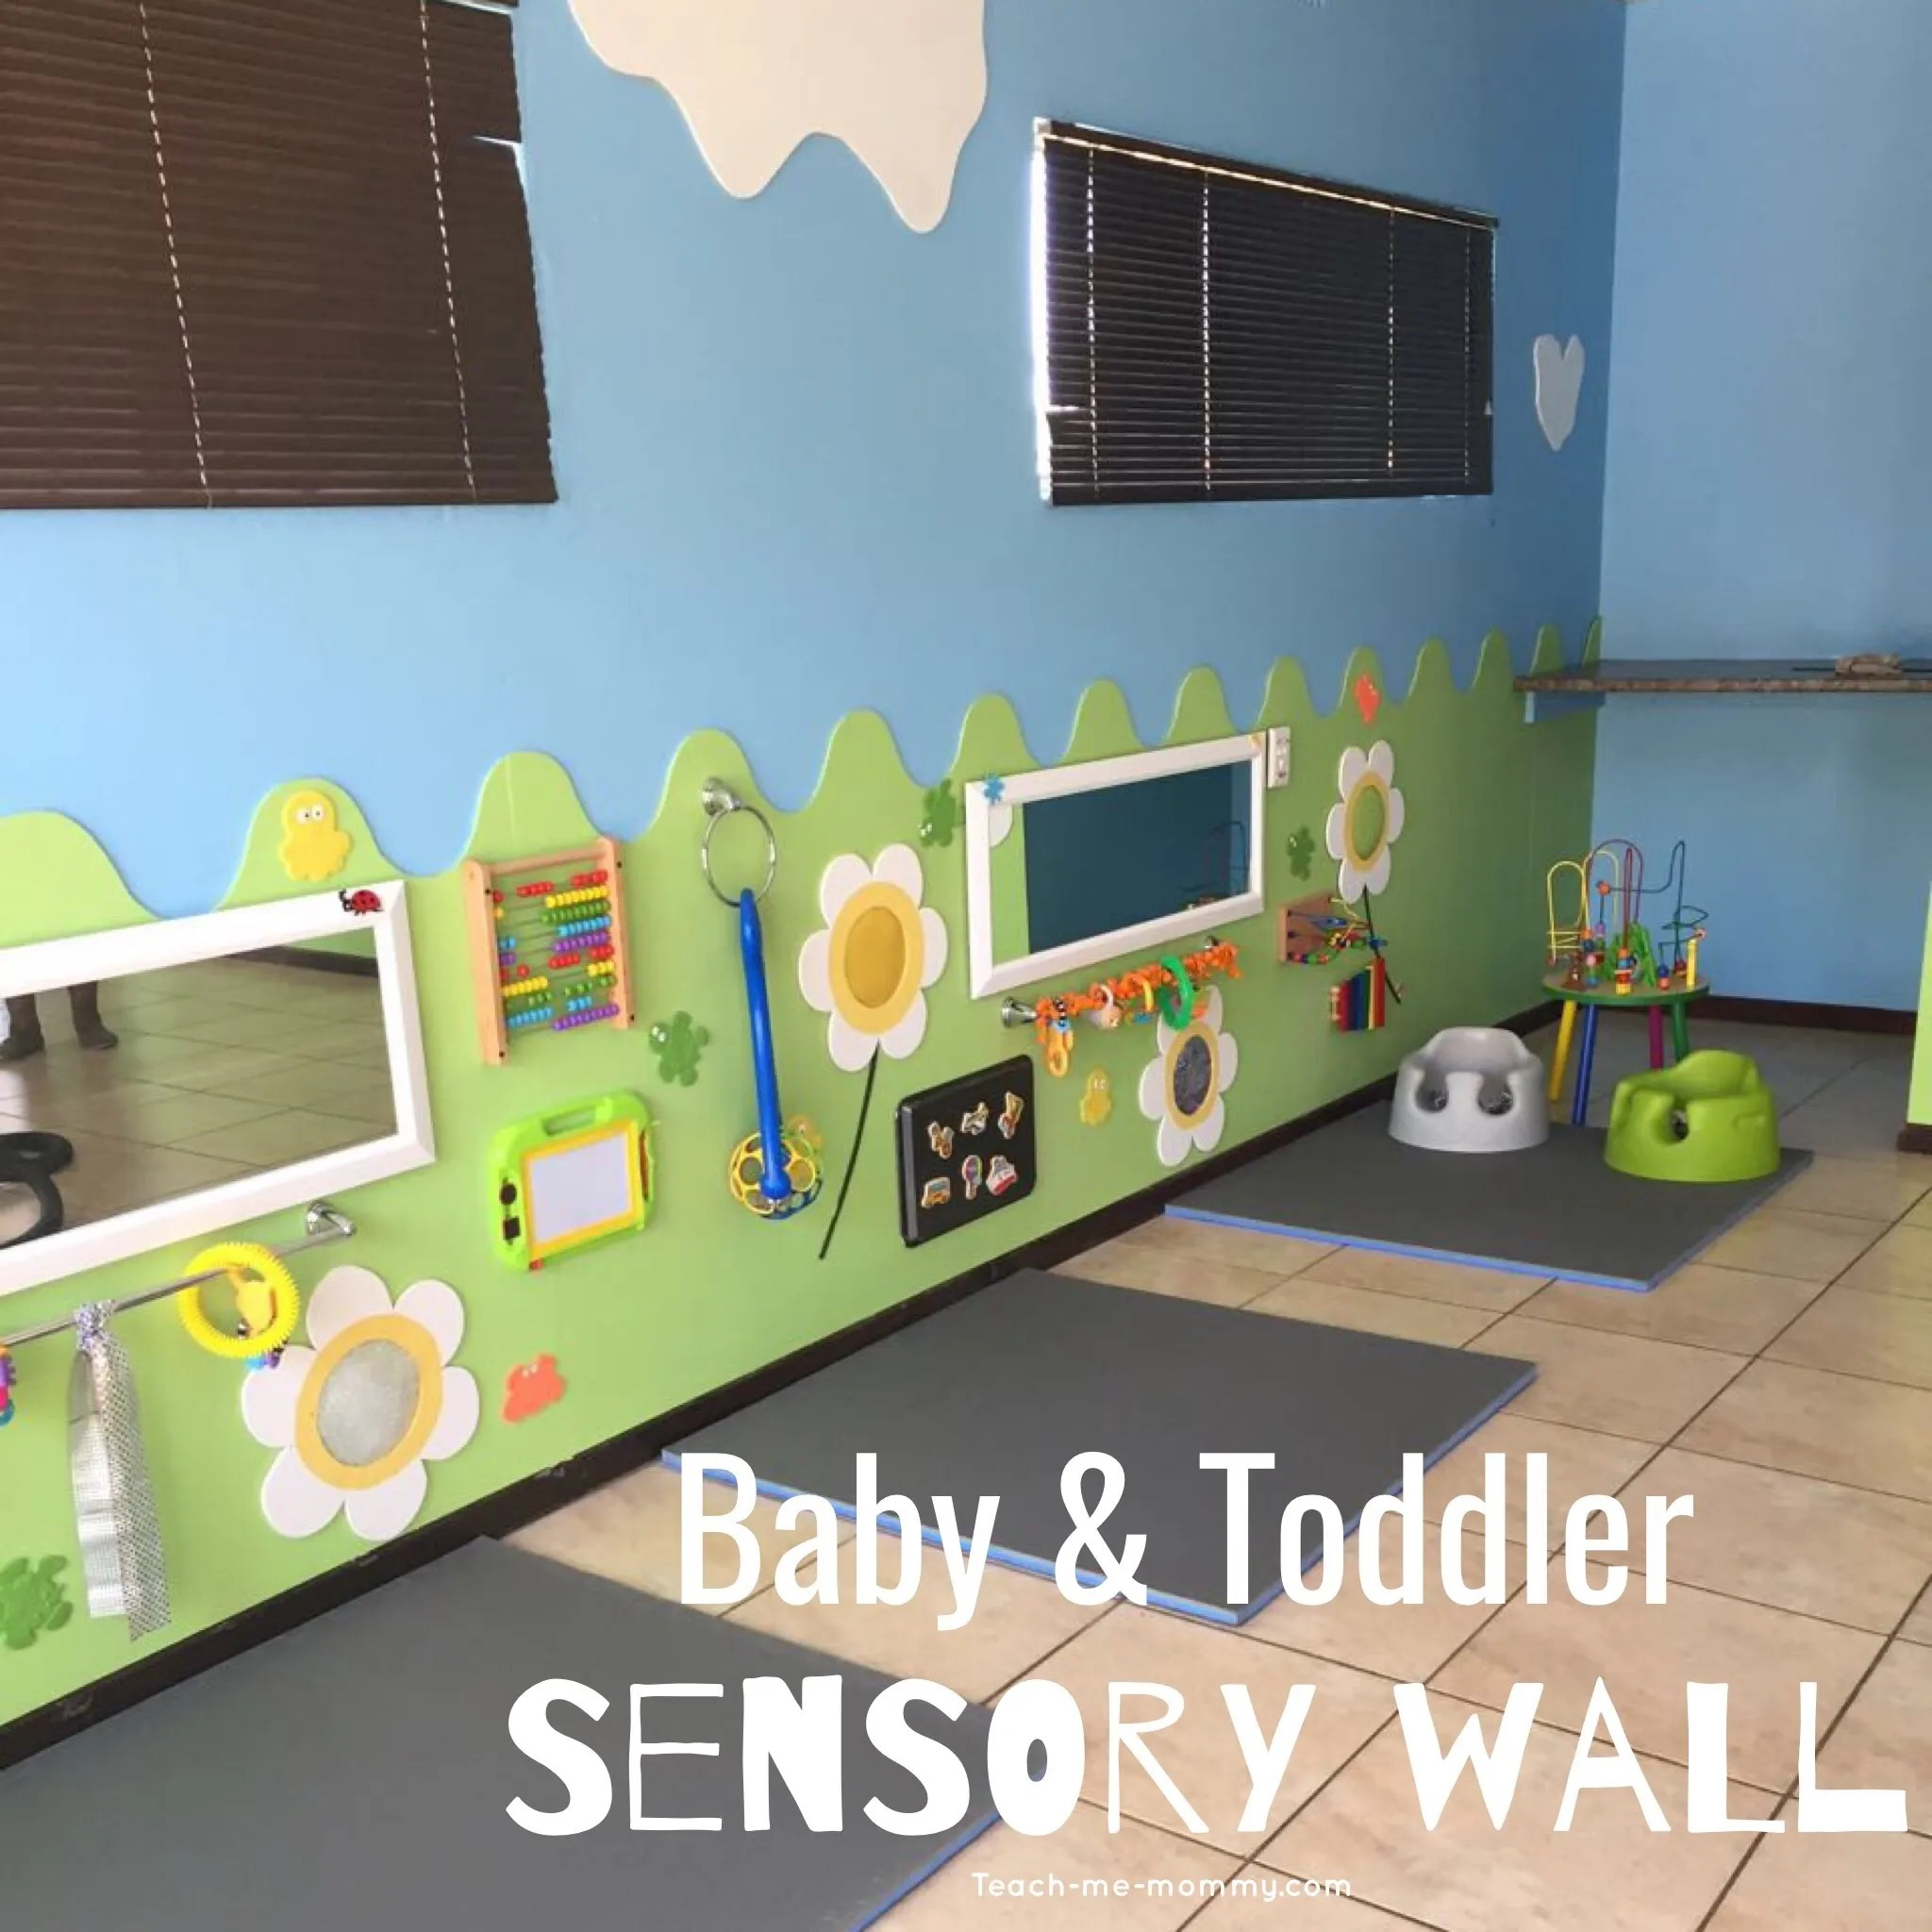 Walls For Kids Sensory Wall For Baby And Toddler Teach Me Mommy